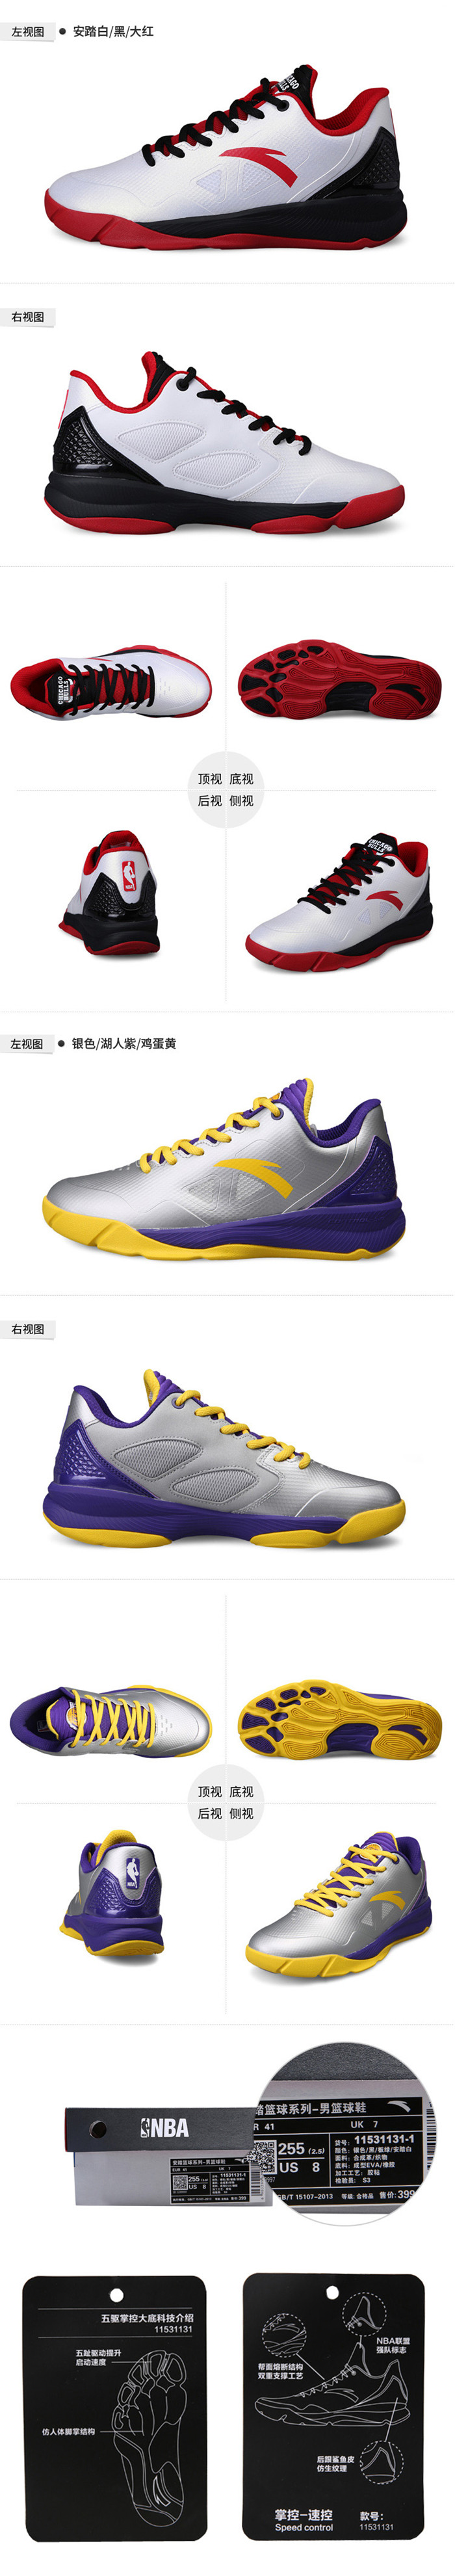 Anta Control-5WD Speed Professional NBA Basketball Shoes